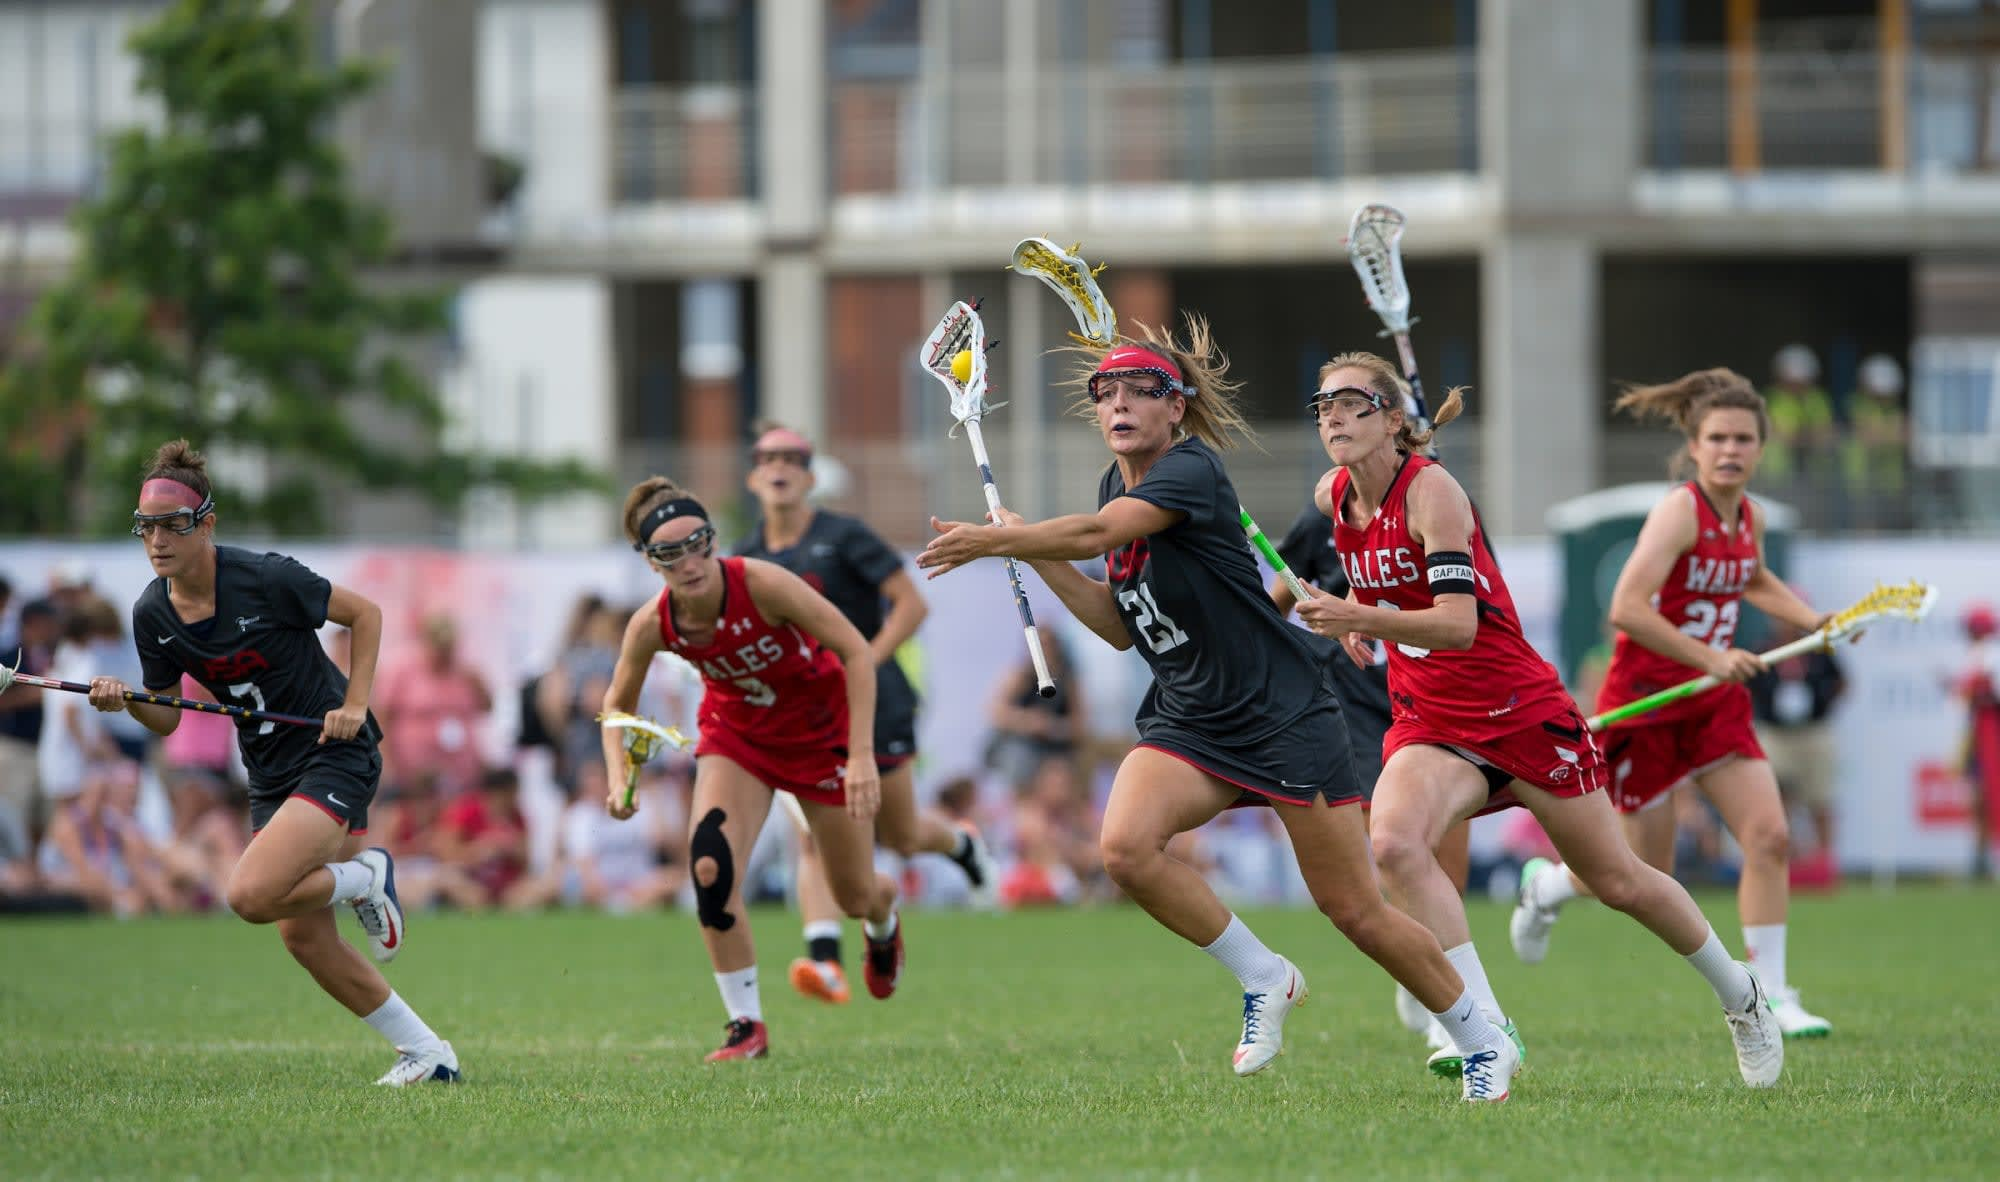 pro women's lacrosse athletes unlimited USA's Taylor Cummings breaks out against Wales at the 2017 FIL Rathbones Women's Lacrosse World Cup, at Surrey Sports Park, Guildford, Surrey, UK, 18th July 2017.